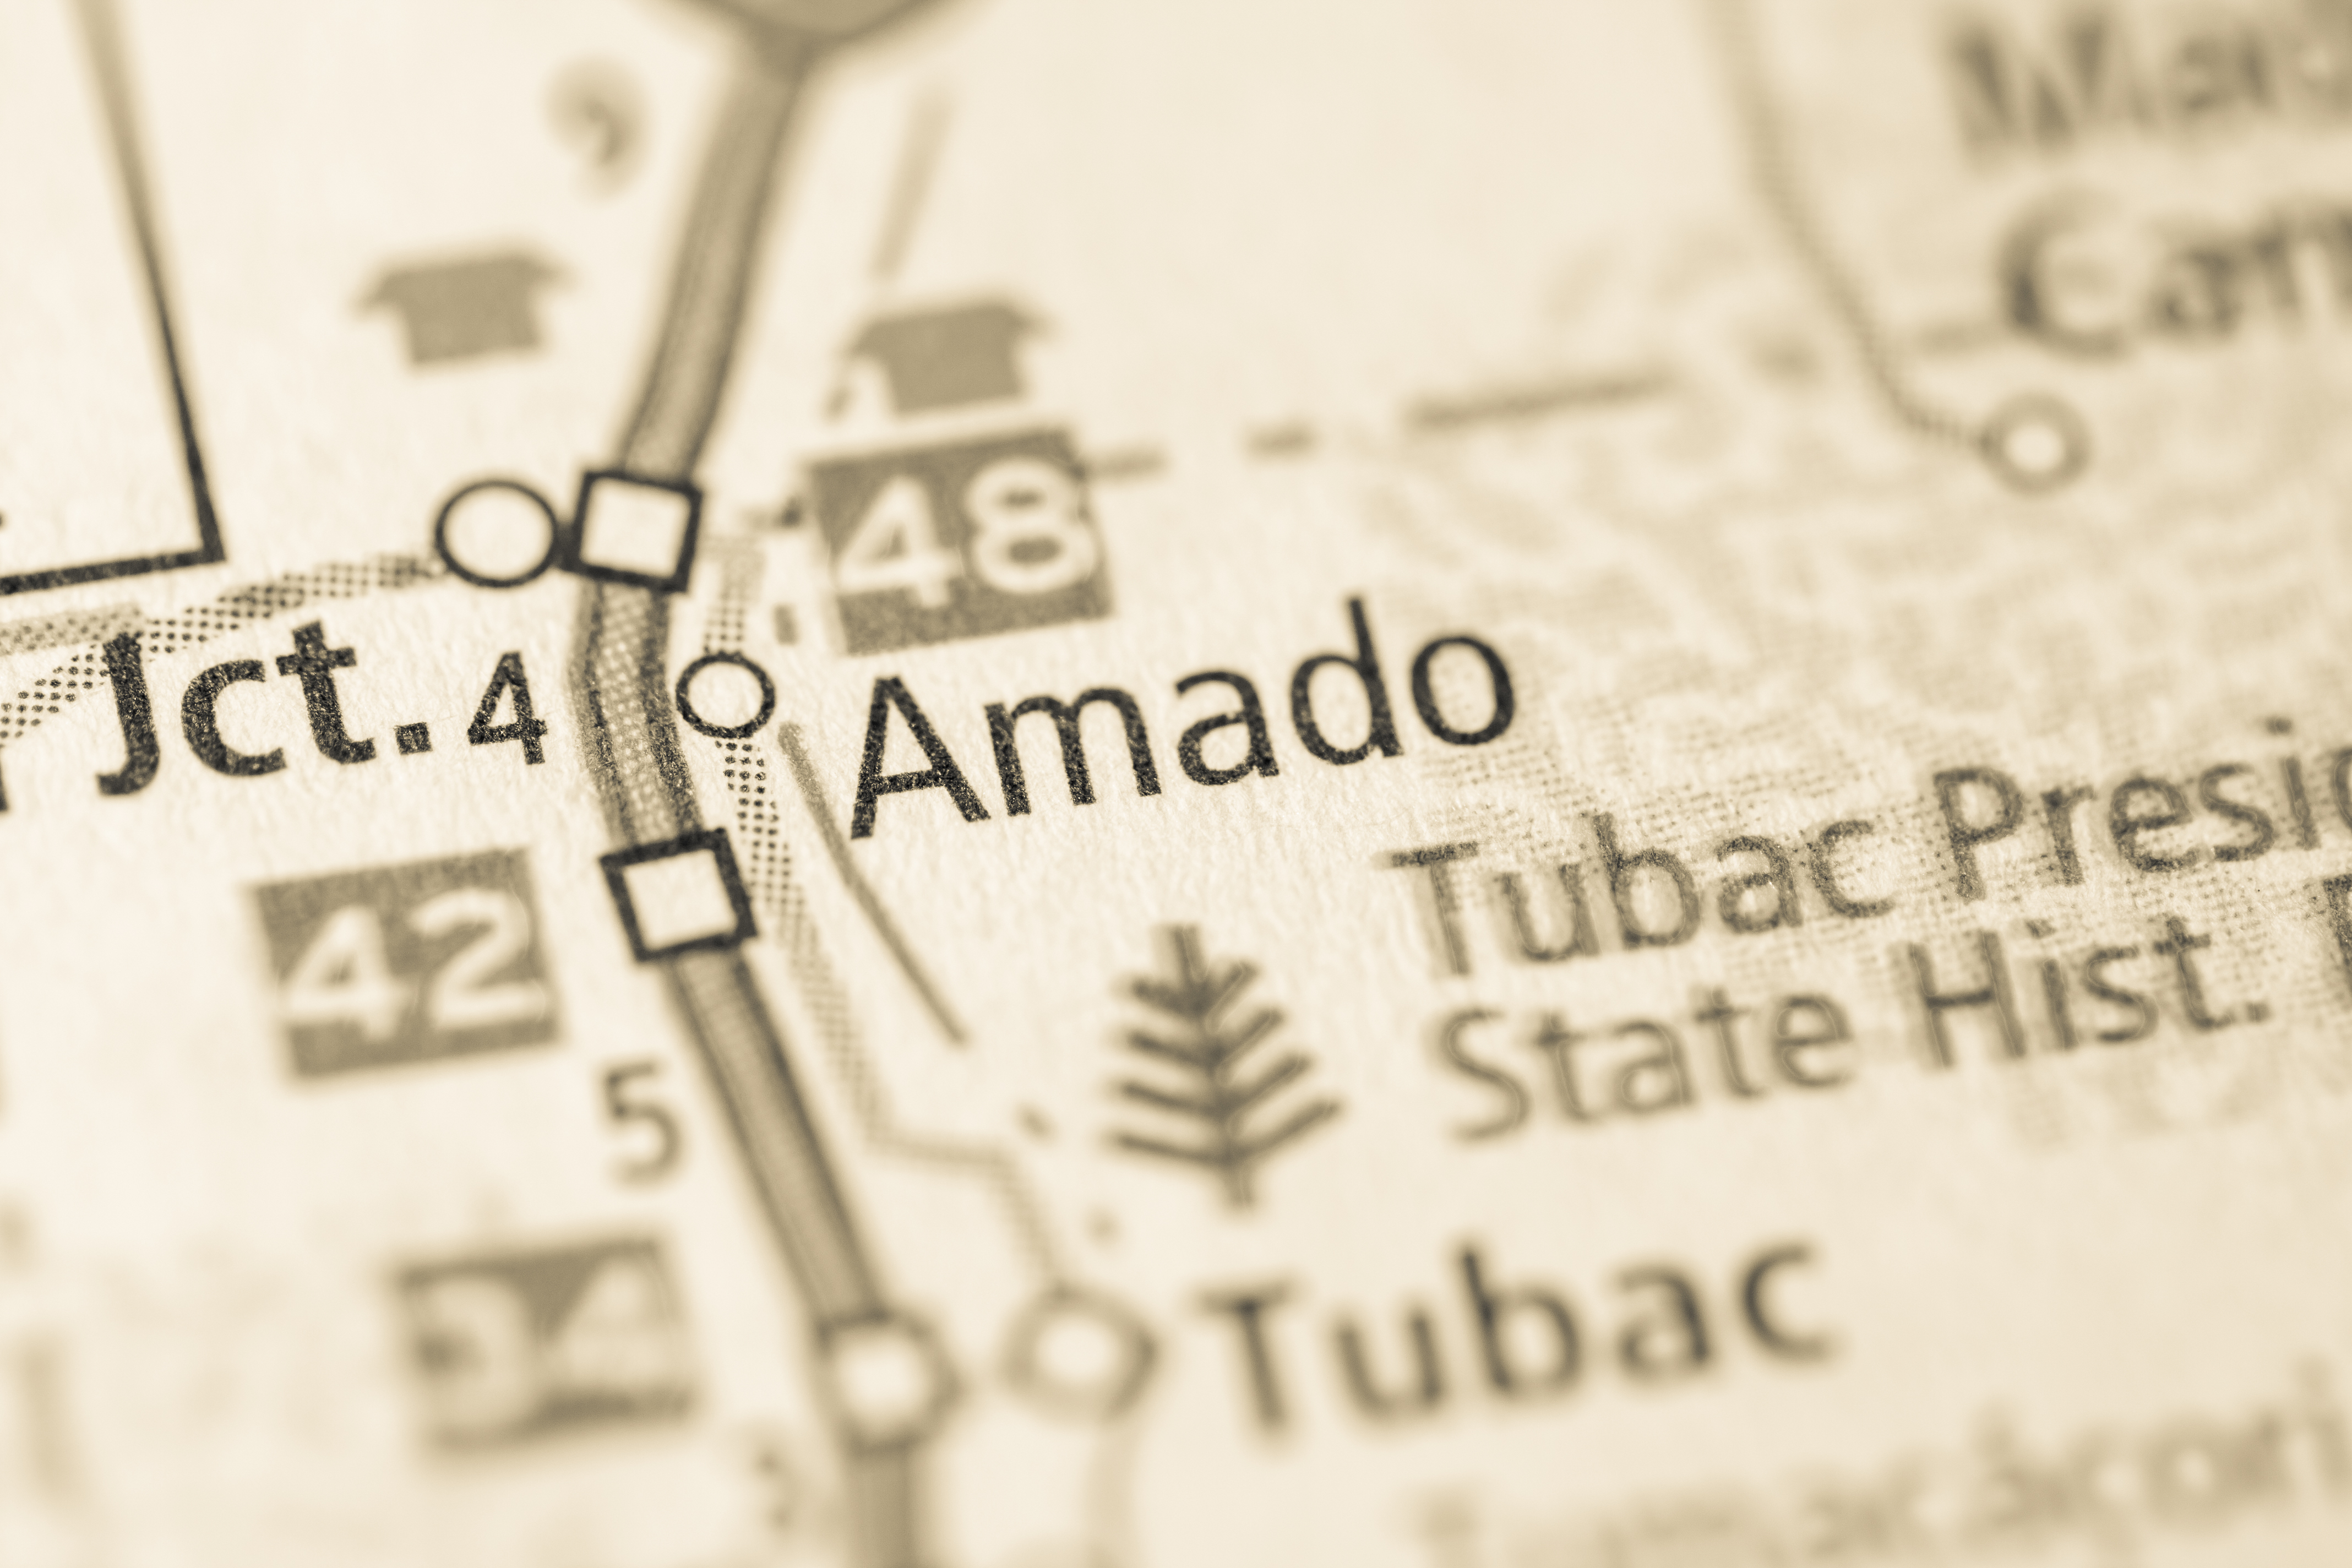 Amado. Arizona. USA